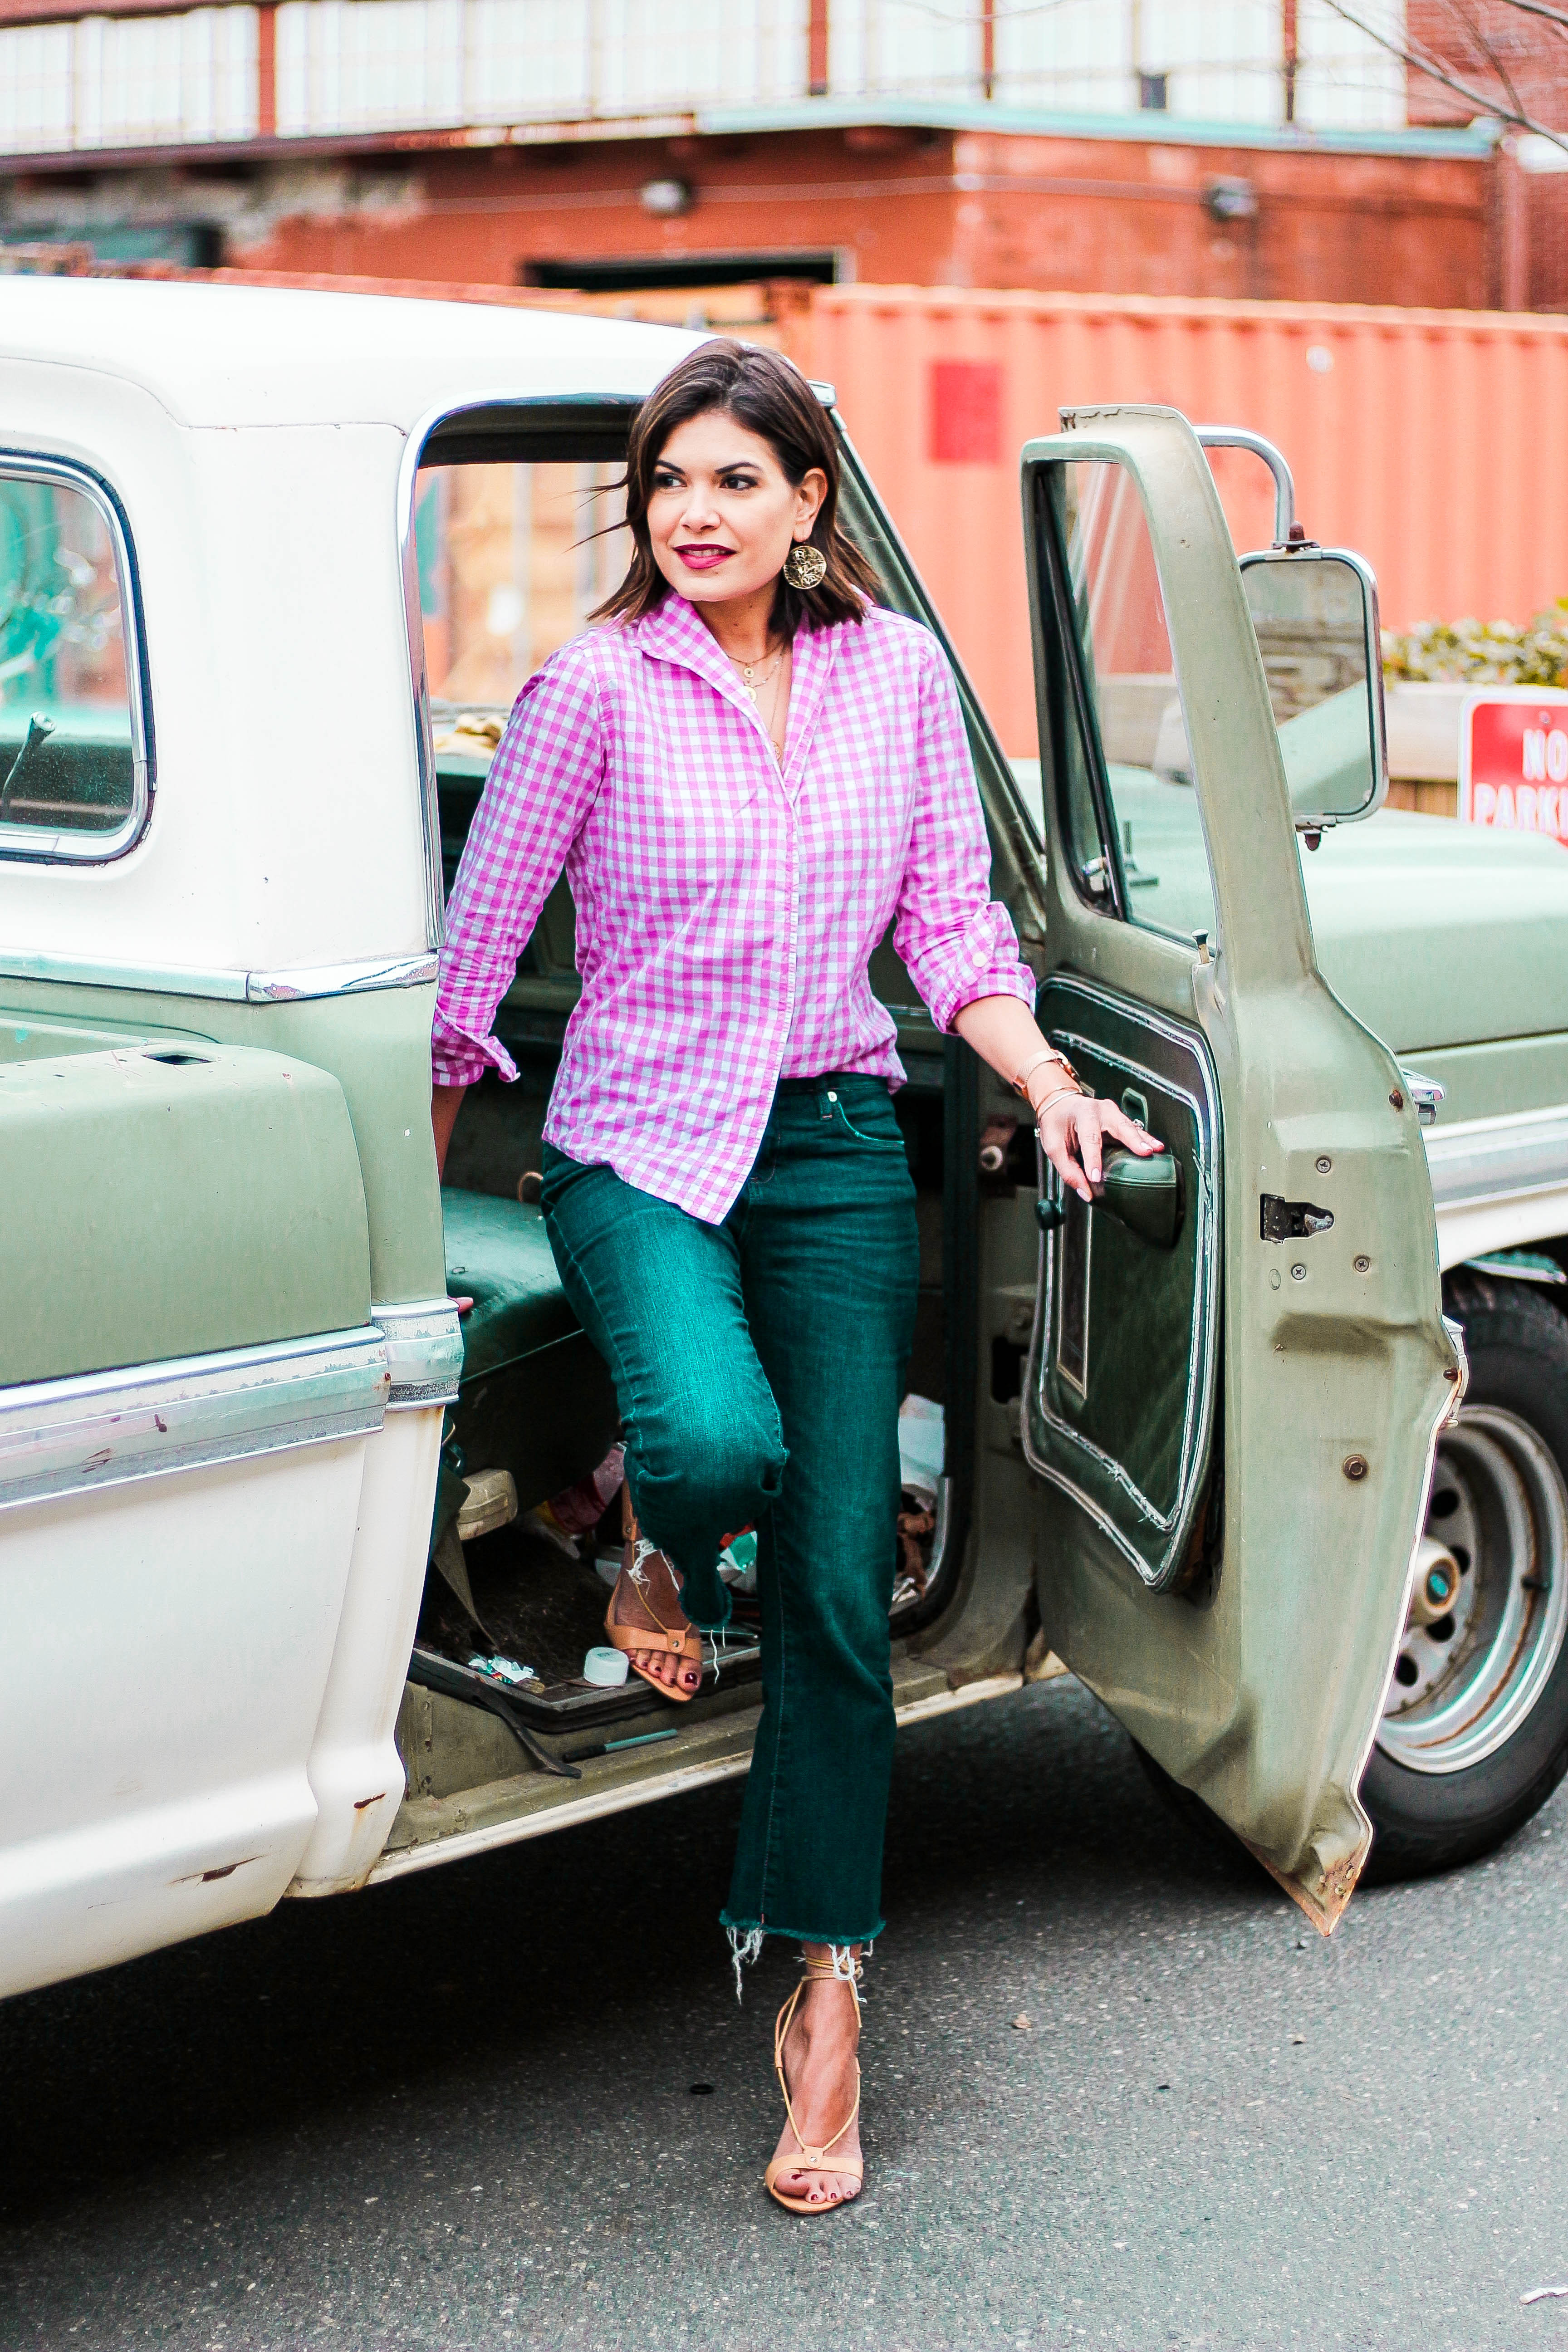 bd1b9ea6393 Fashion blogger stepping out of a vintage truck wearing a pink gingham  button up shirt and